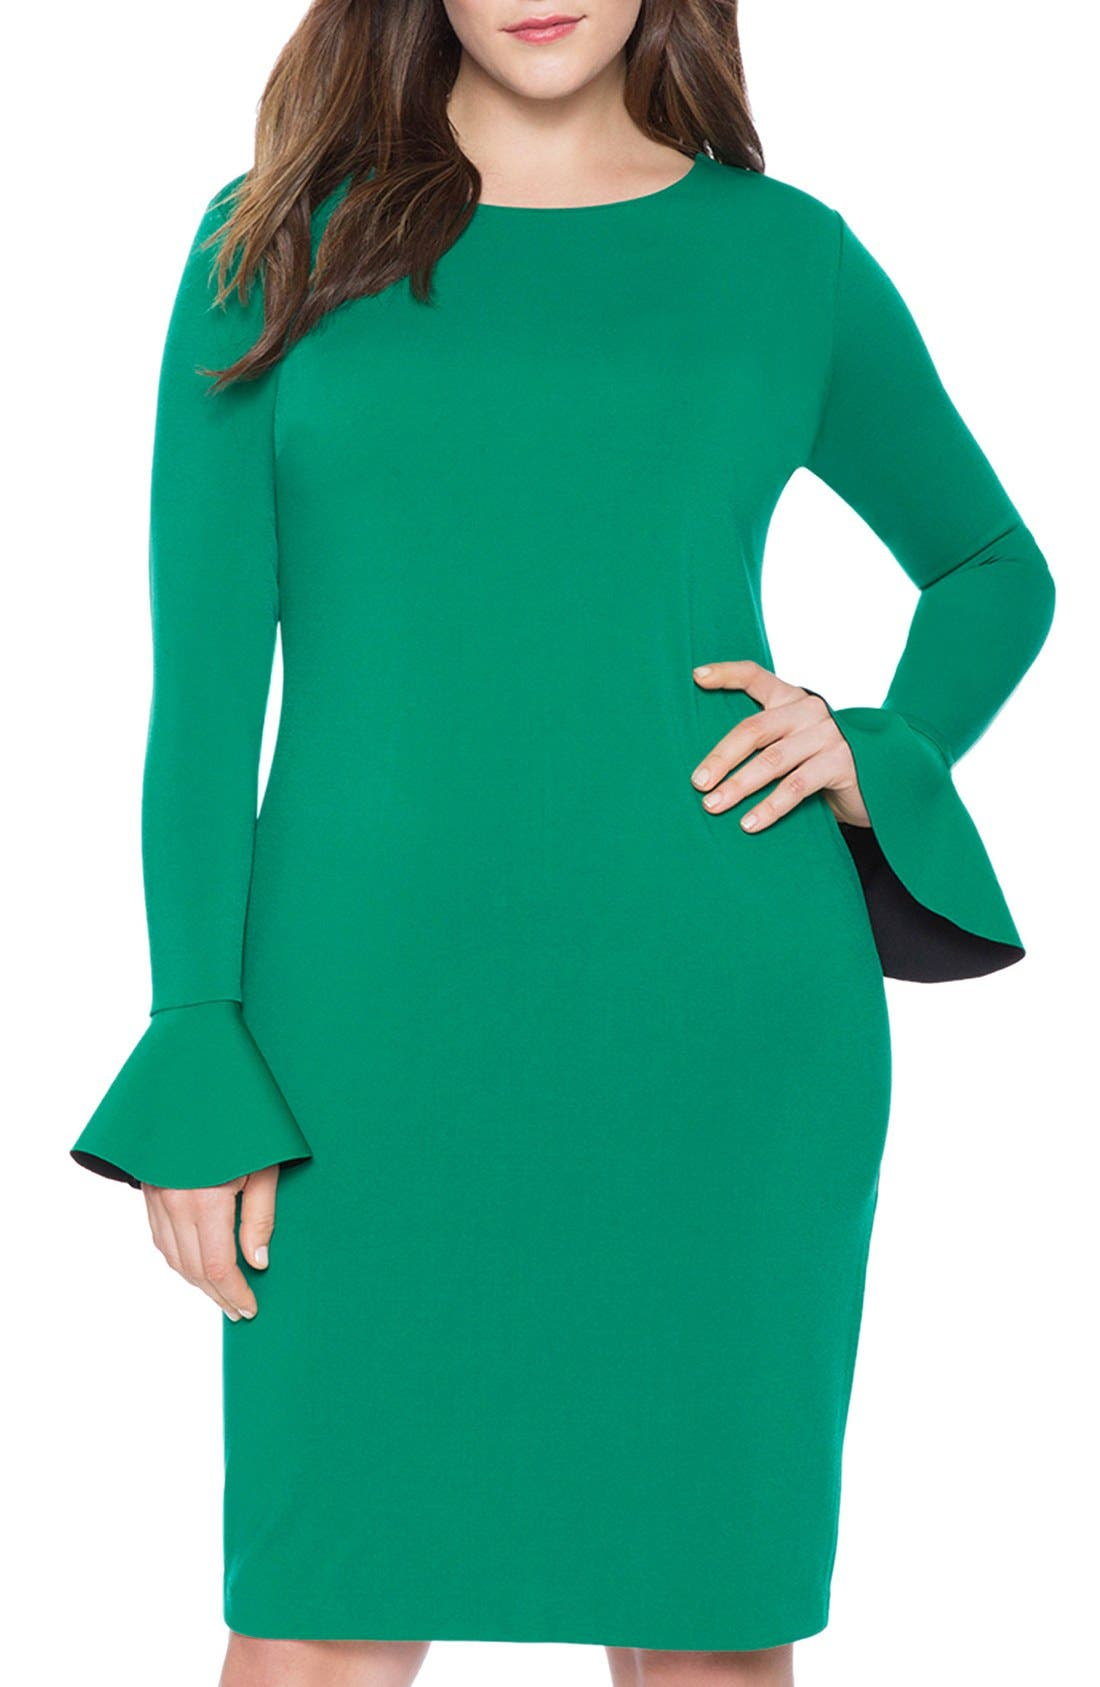 Main Image - ELOQUII Lace Inset Flounce Cuff Body-Con Dress (Plus Size)